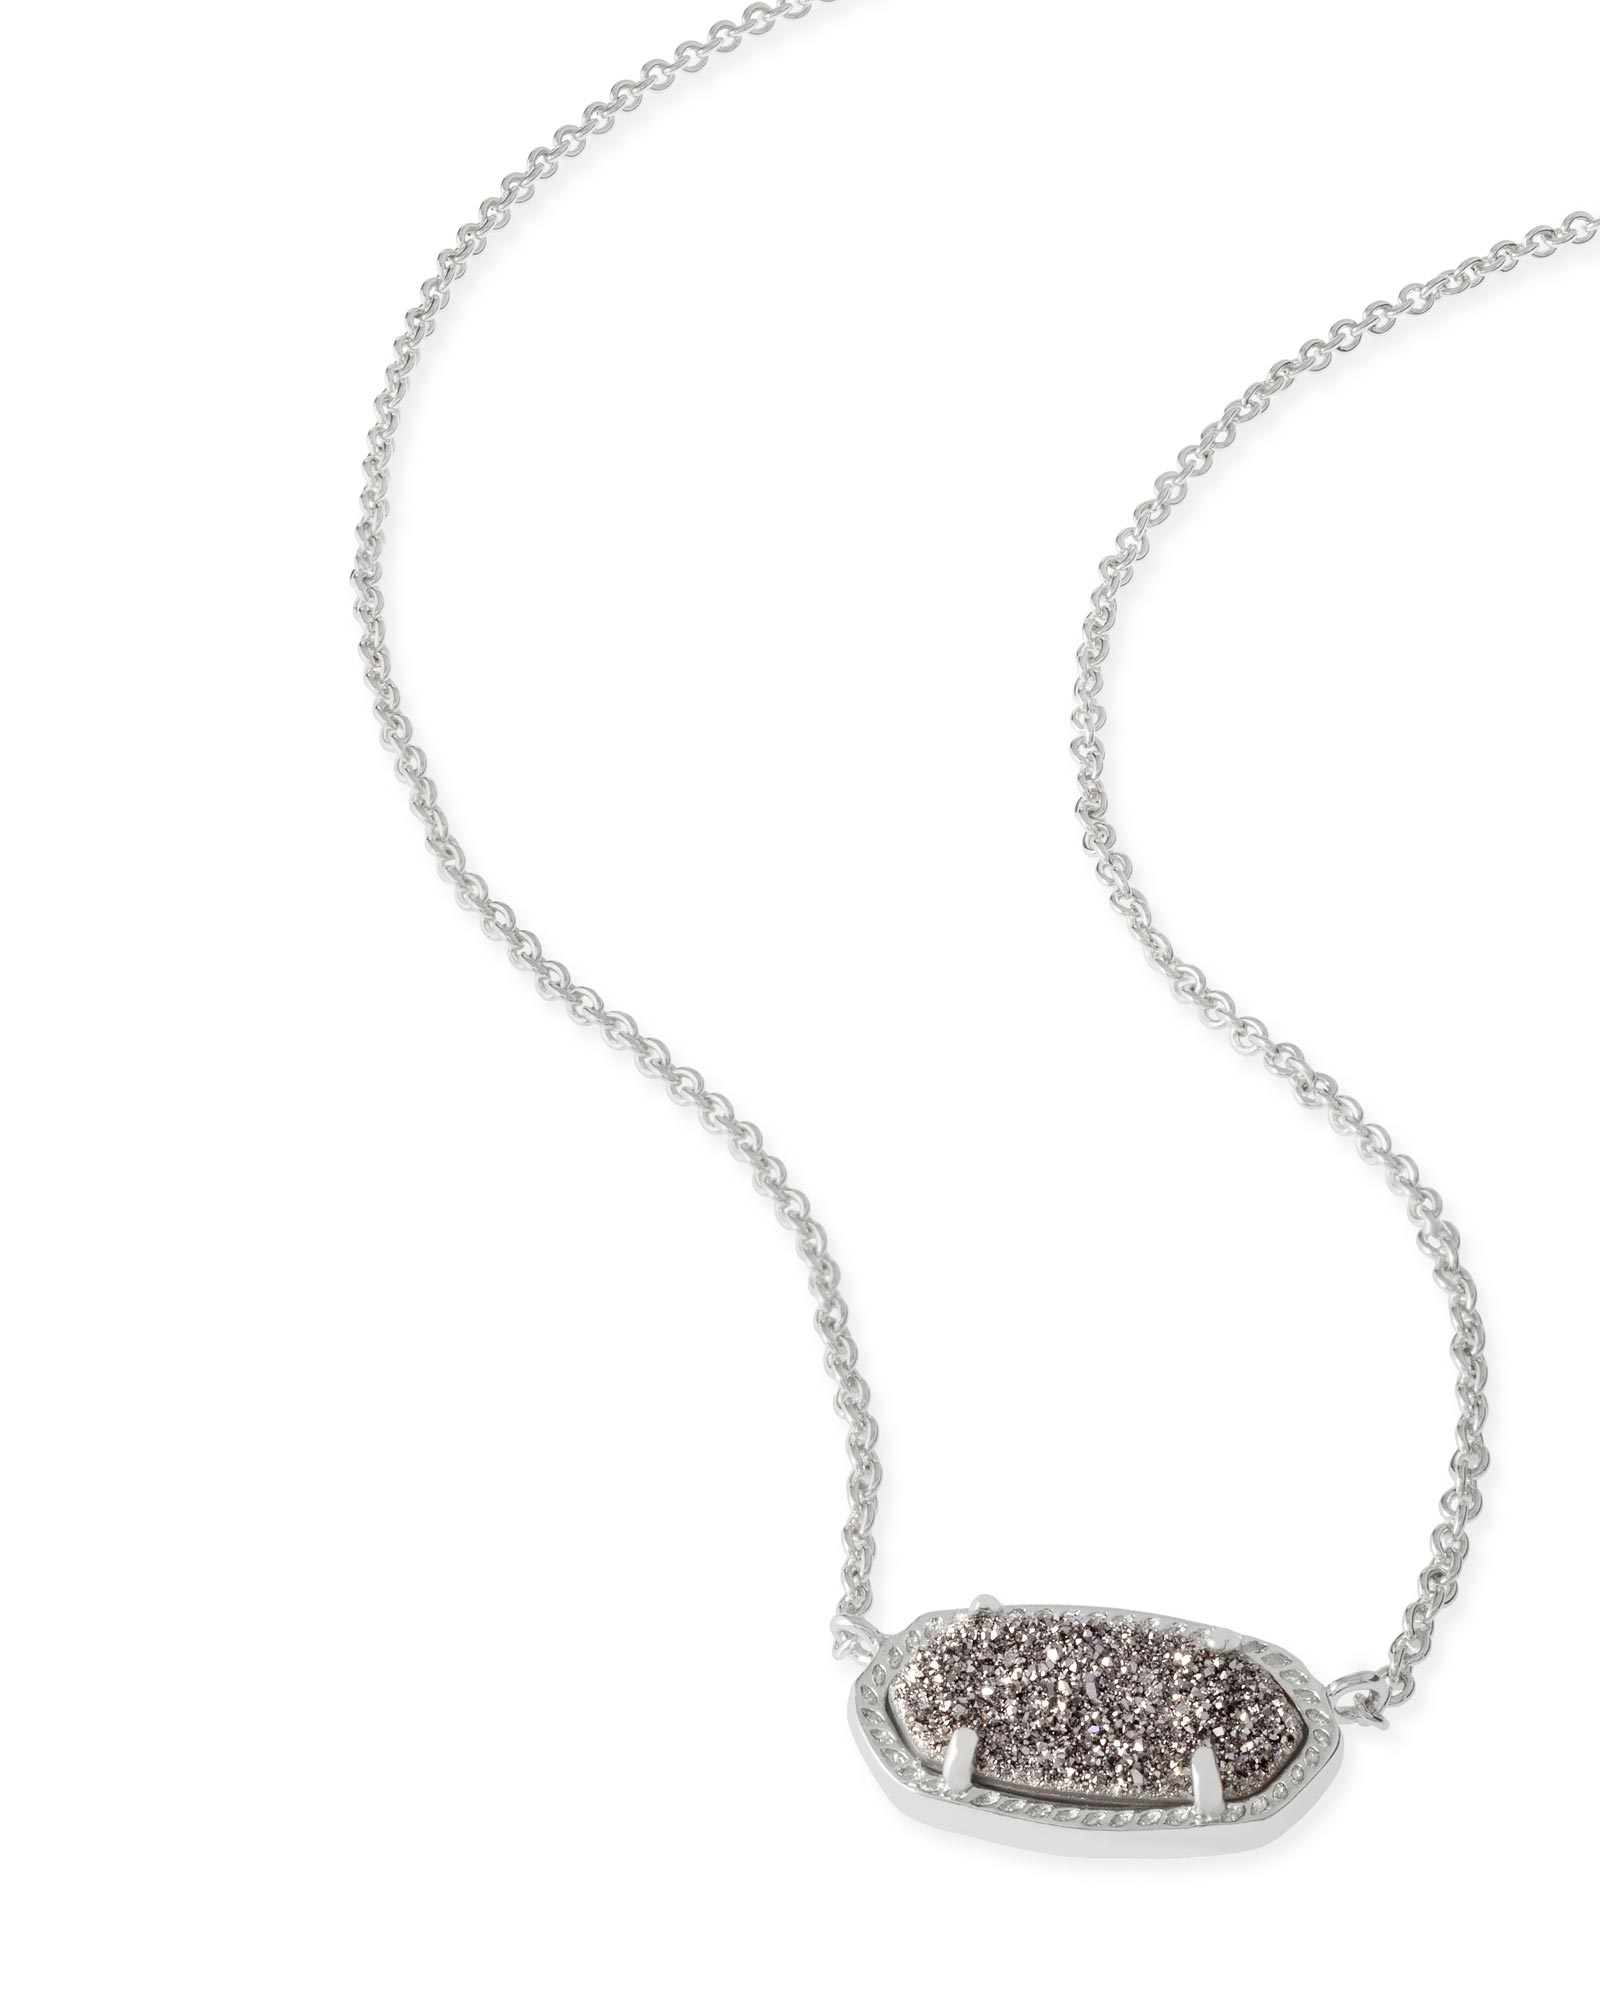 Elisa silver pendant necklace in platinum kendra scott elisa silver pendant necklace in platinum drusy mozeypictures Choice Image